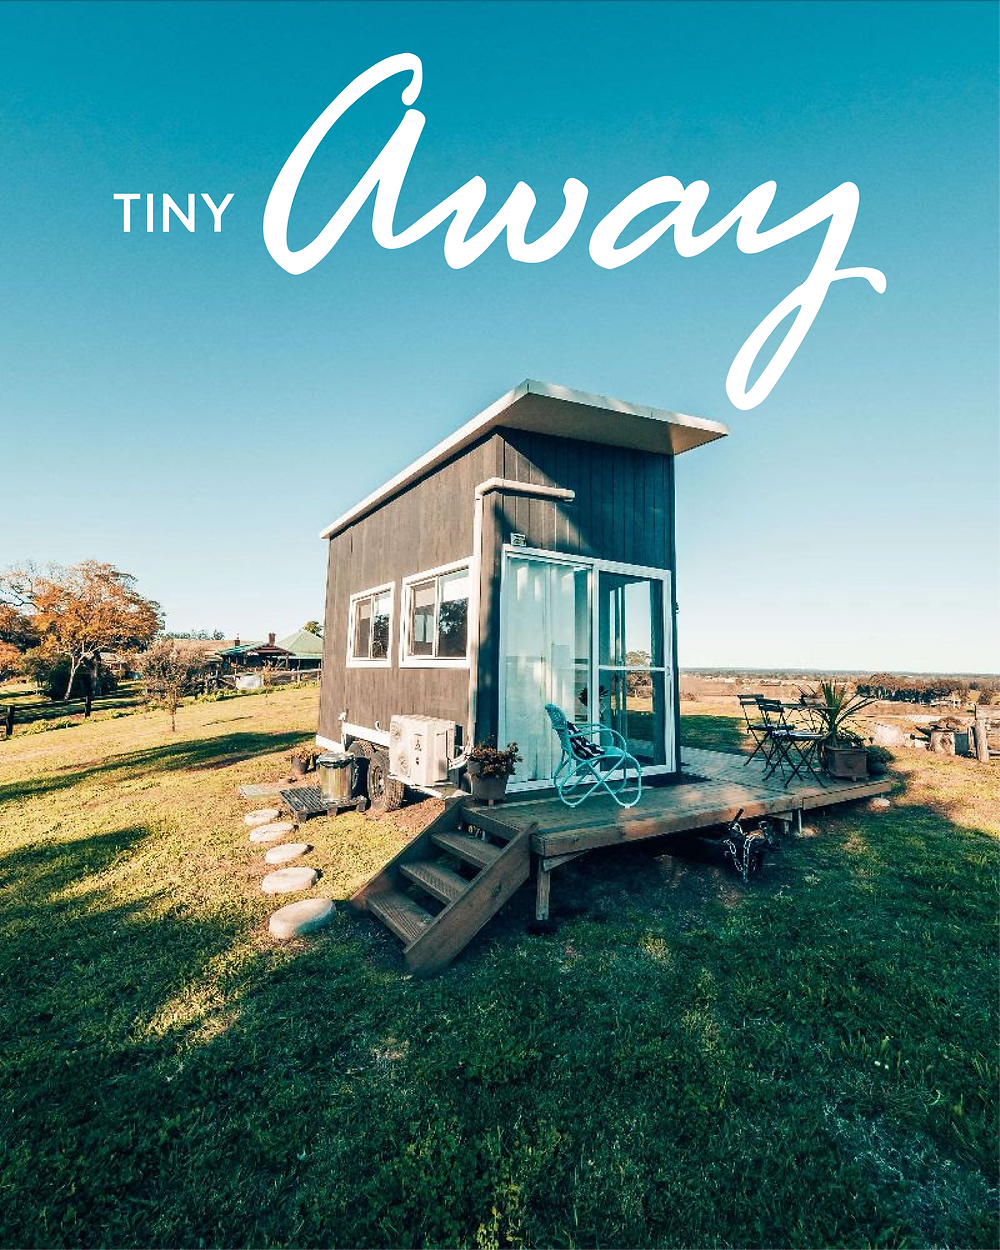 Tiny Houses, Tiny away, Malniri Park, feature story by Brilliant-Online